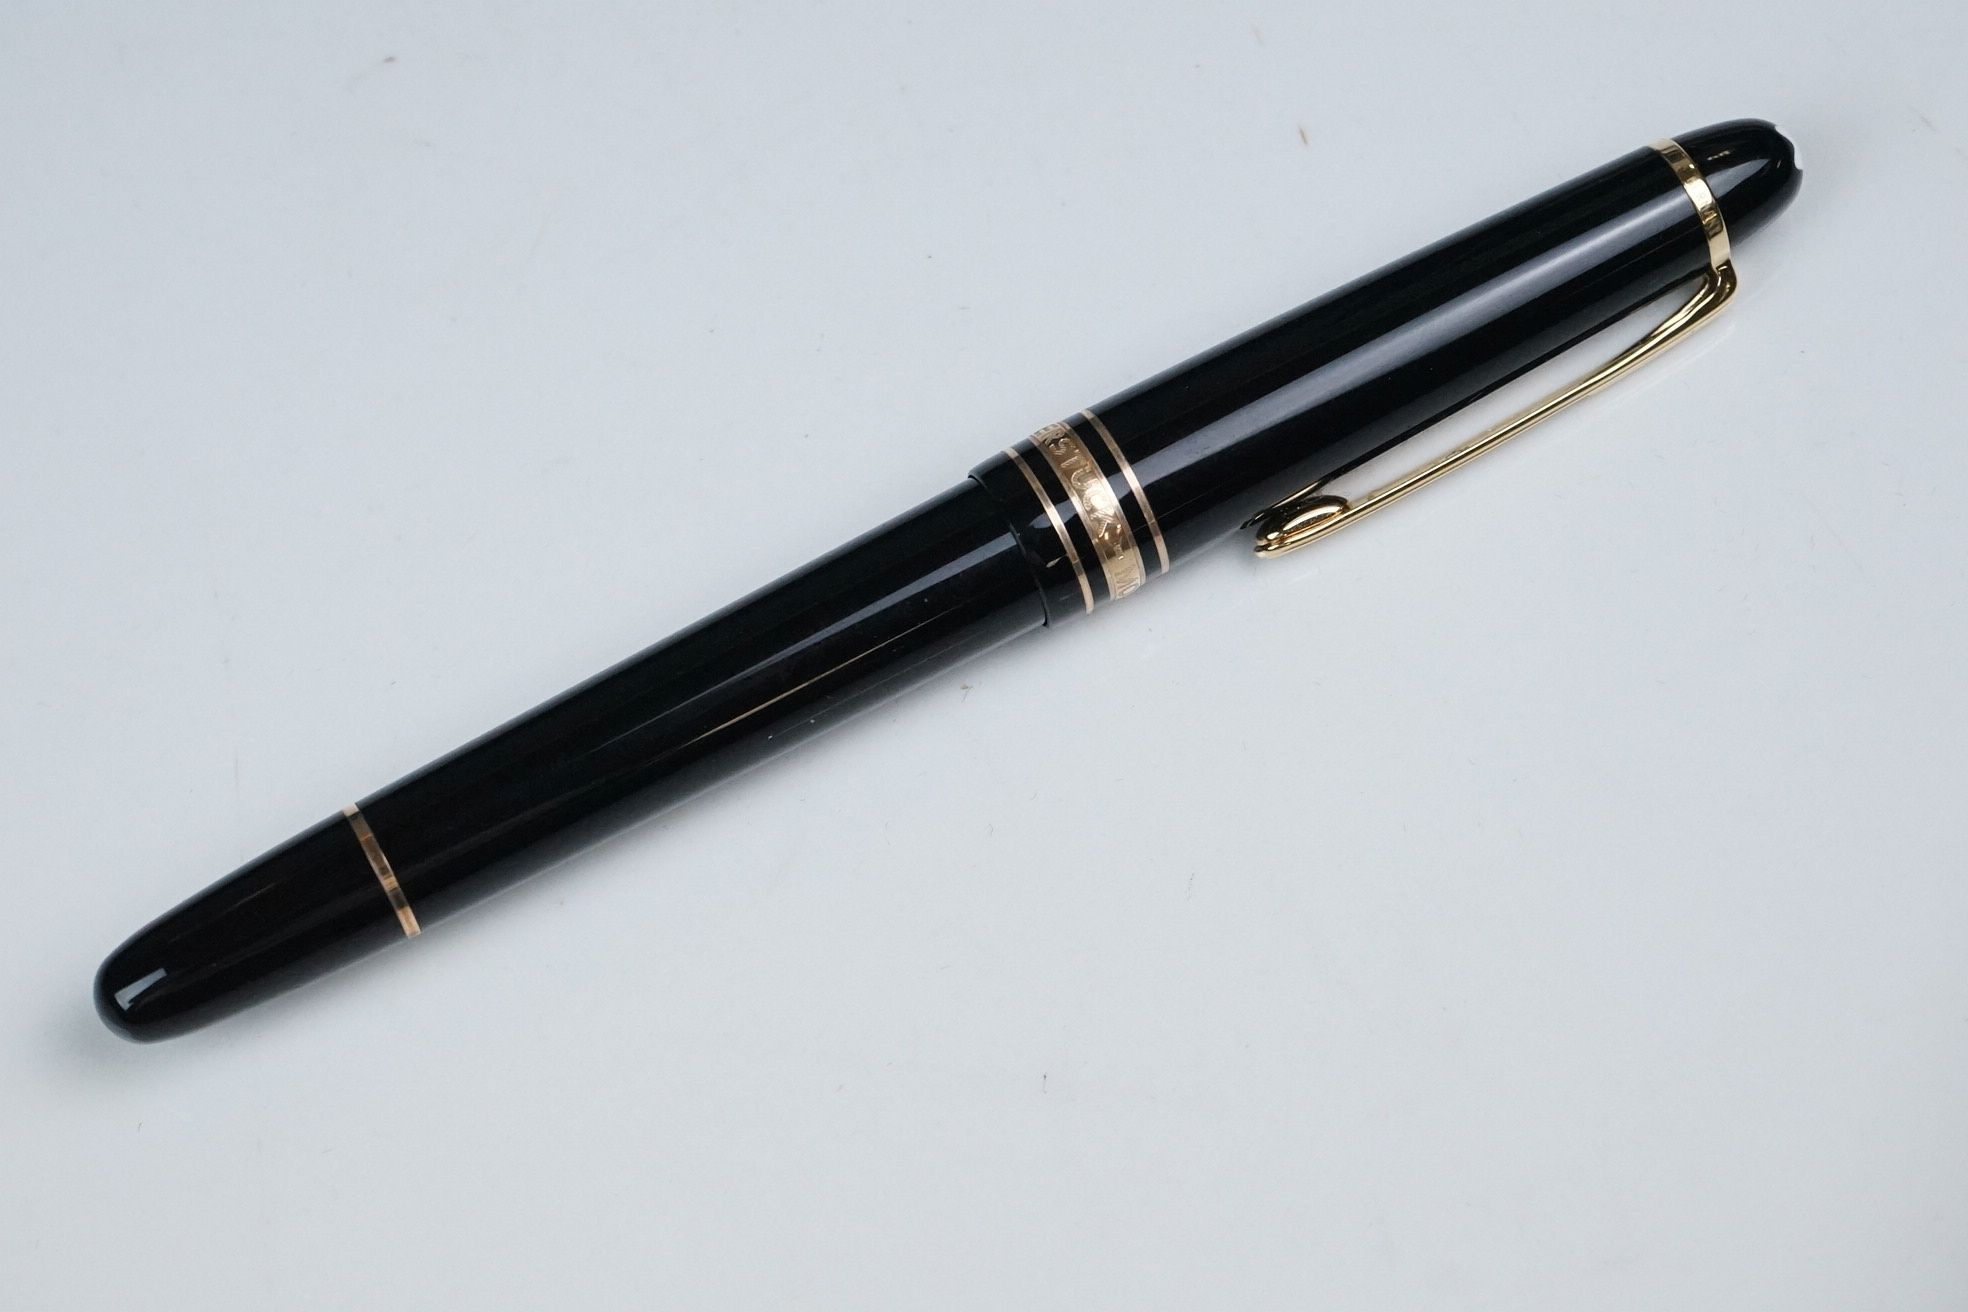 Mont Blanc Meisterstuck Hommage A Frederic Chopin fountain pen, model 145 M, with CD, service - Image 4 of 6